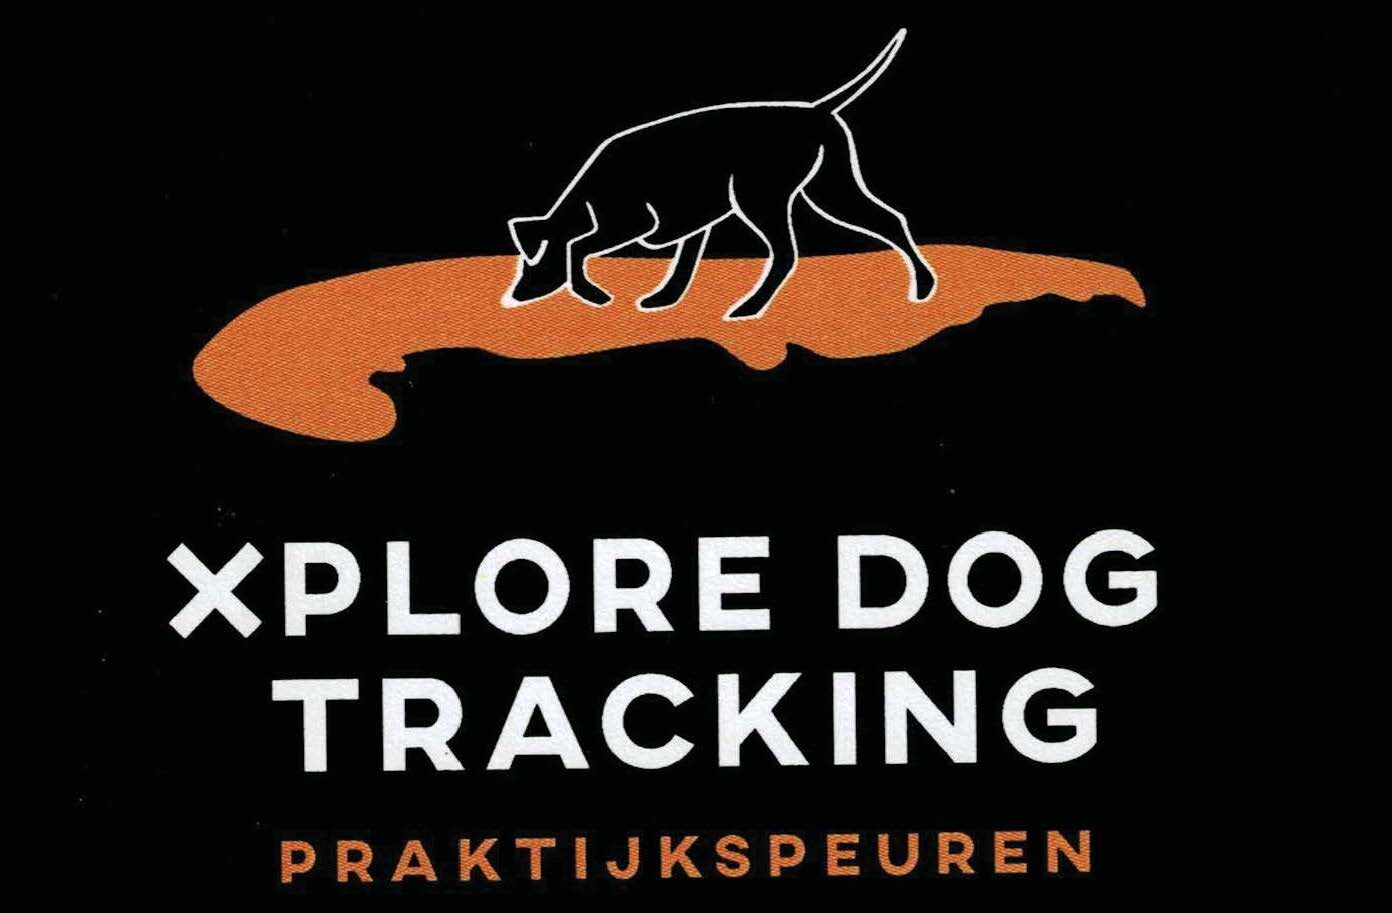 Xplore Dog Tracking